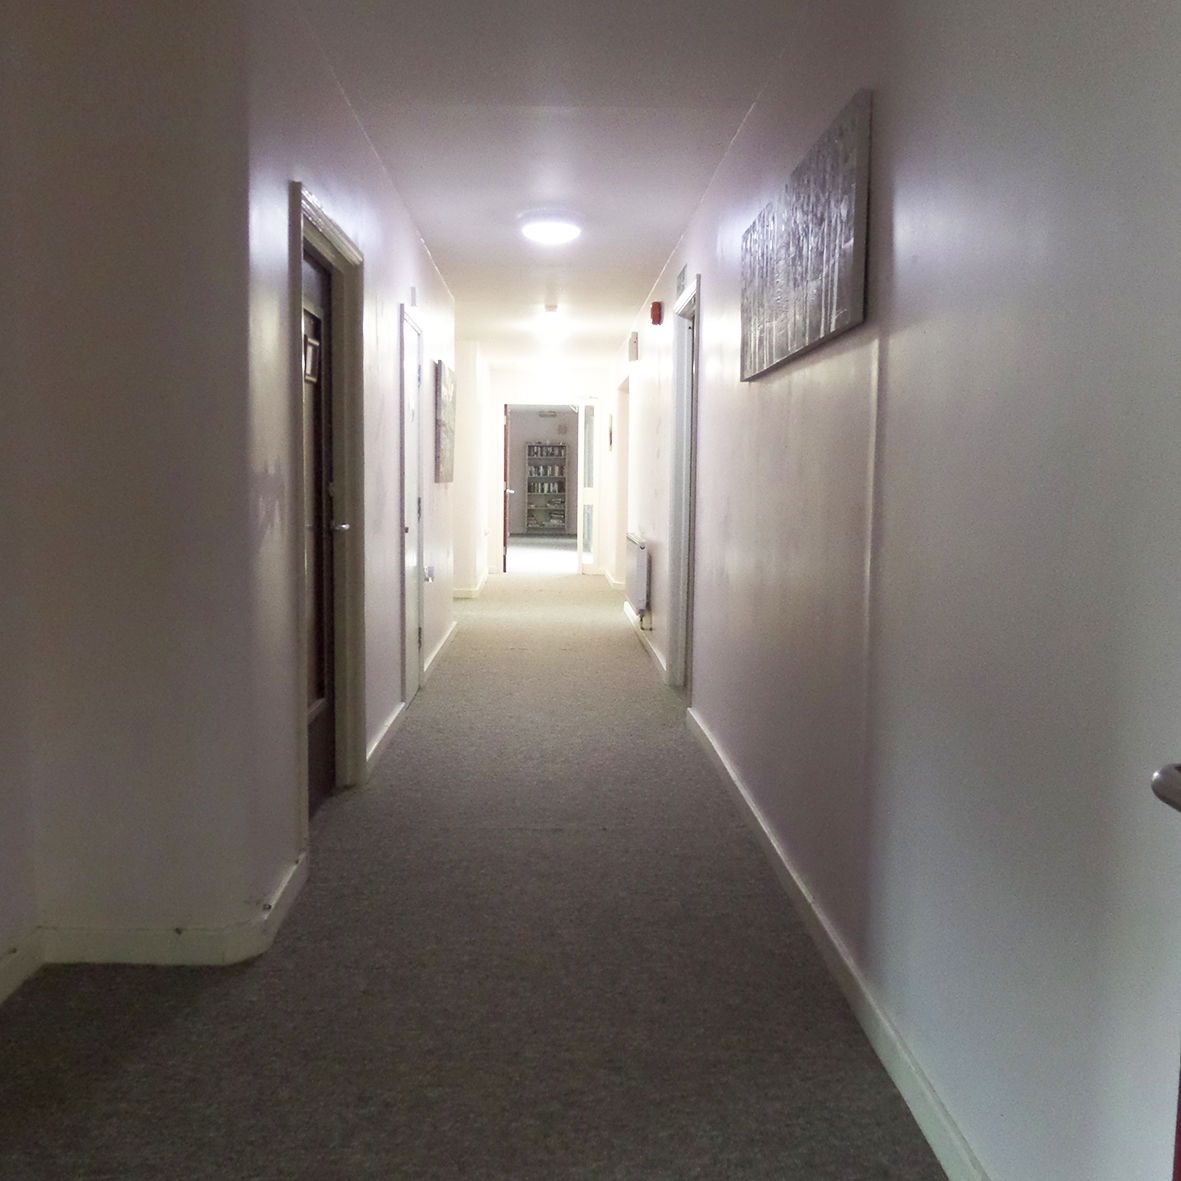 Hallway, view to 3rd lounge